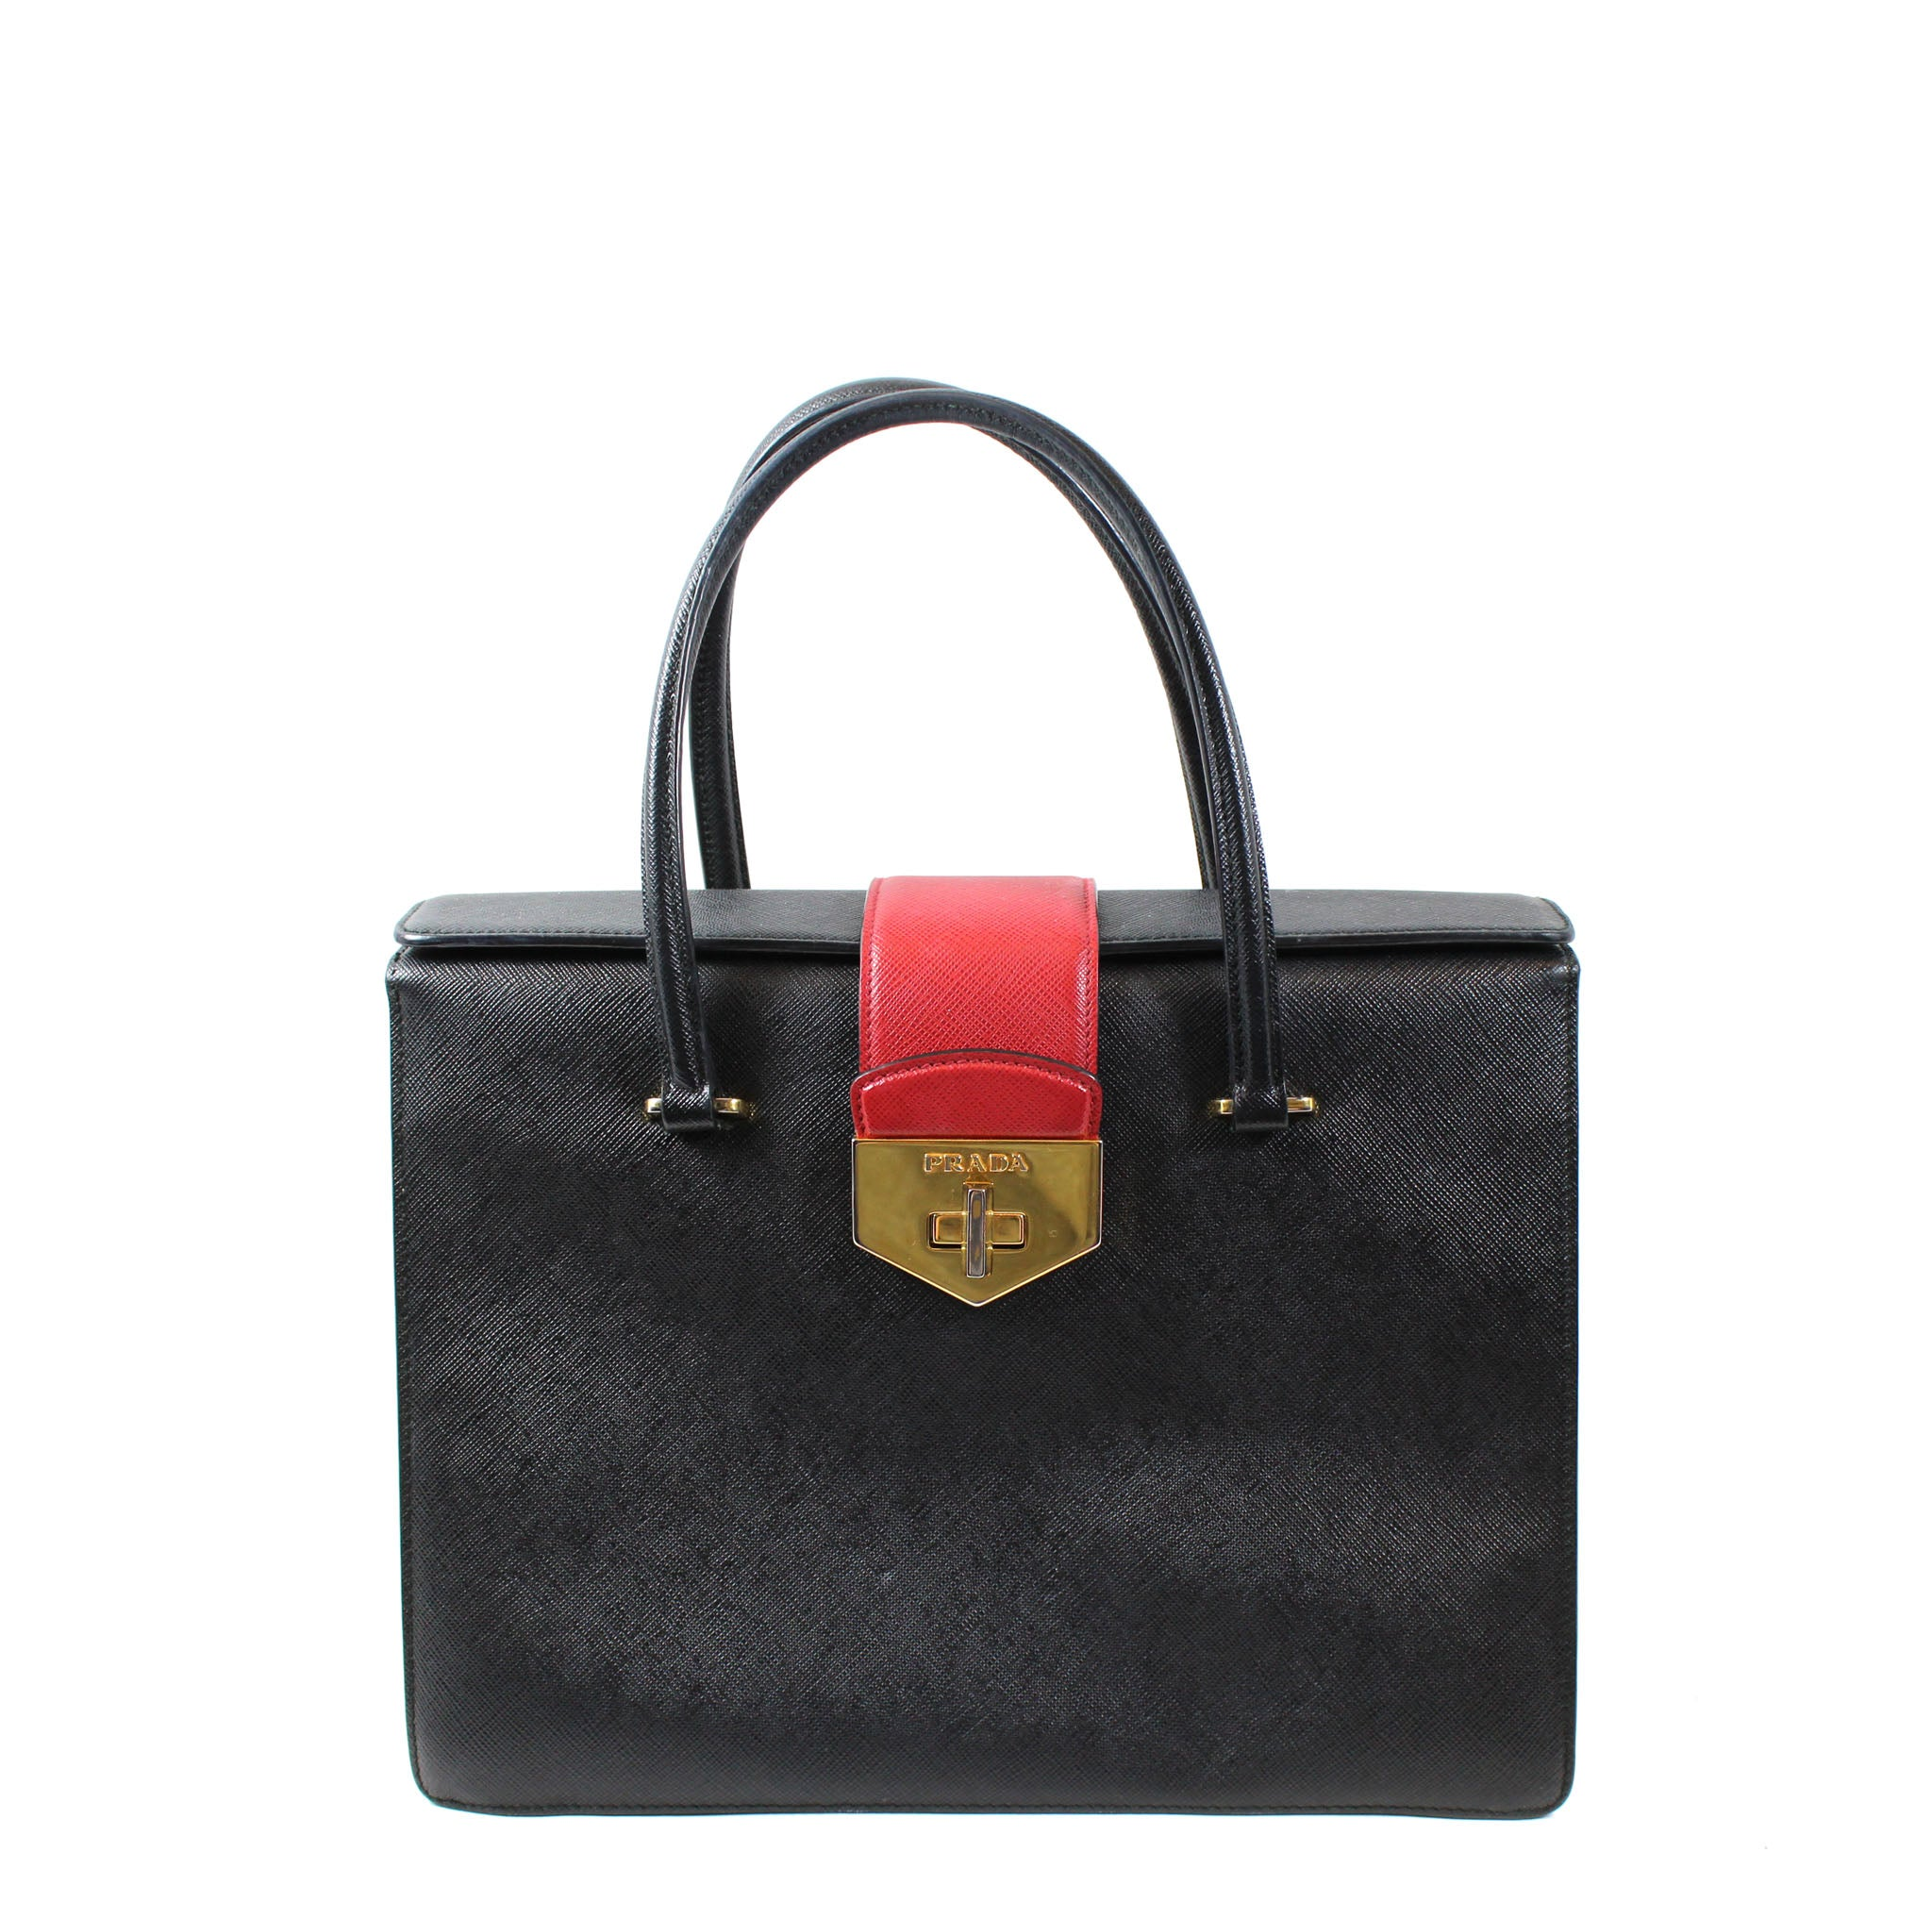 41ef4de5cf Prada Black White Red Saffiano Leather Gusseted Handbag – Encore Resale.com